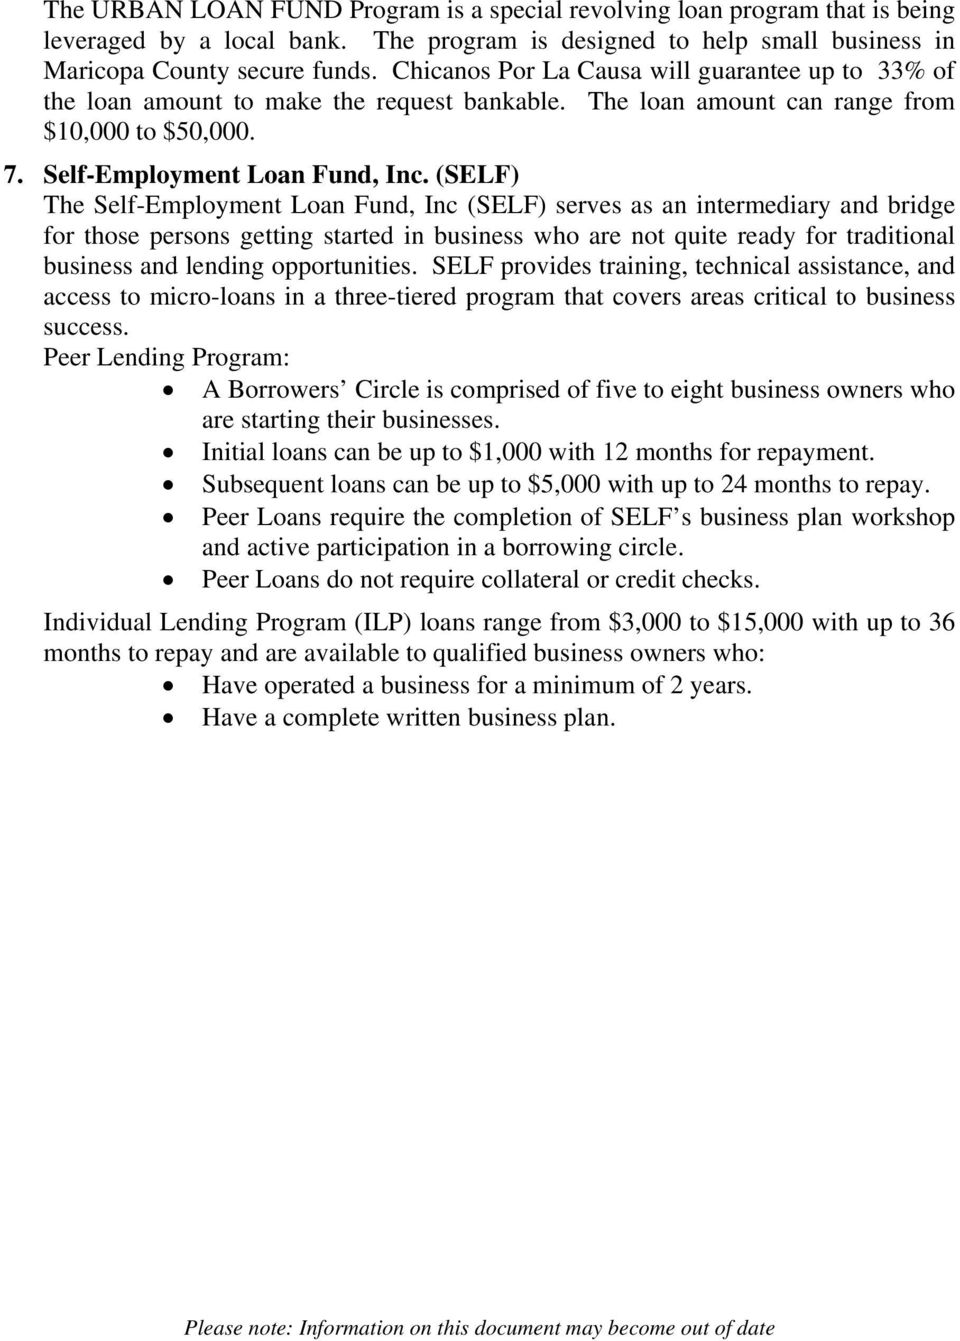 (SELF) The Self-Employment Loan Fund, Inc (SELF) serves as an intermediary and bridge for those persons getting started in business who are not quite ready for traditional business and lending